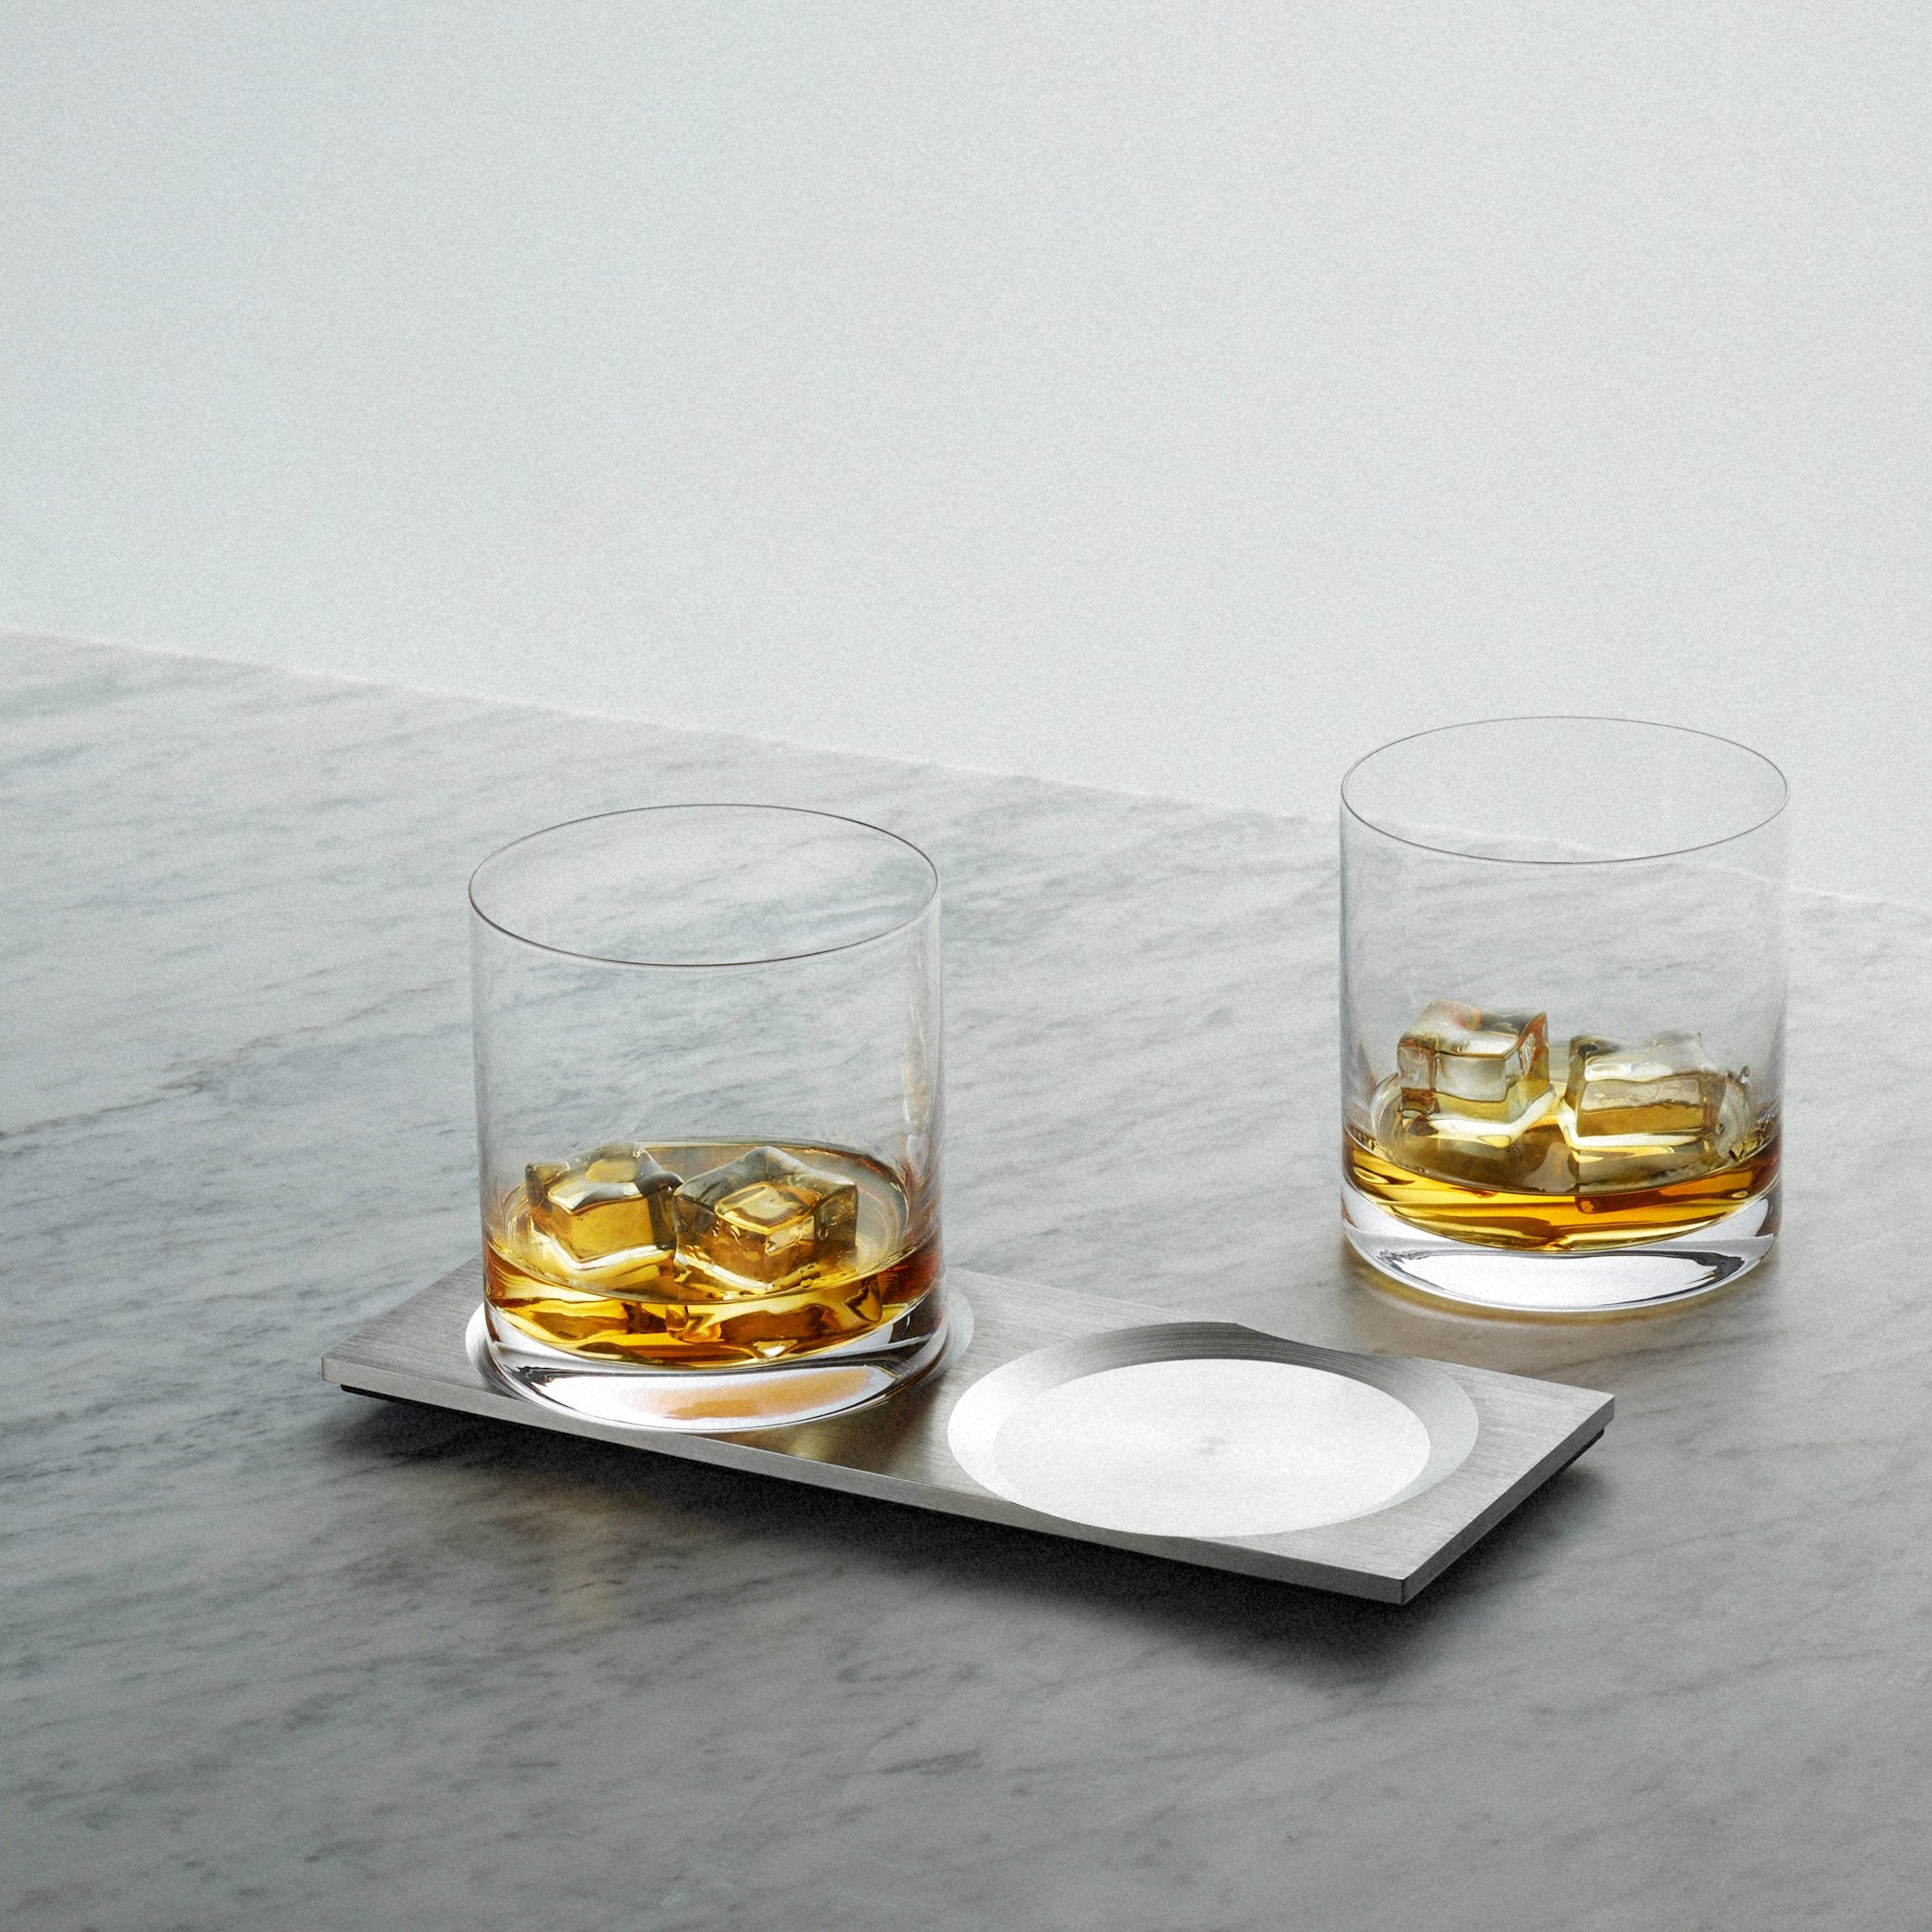 MACHINED / WHISKY / STEEL - No.42 Interiors